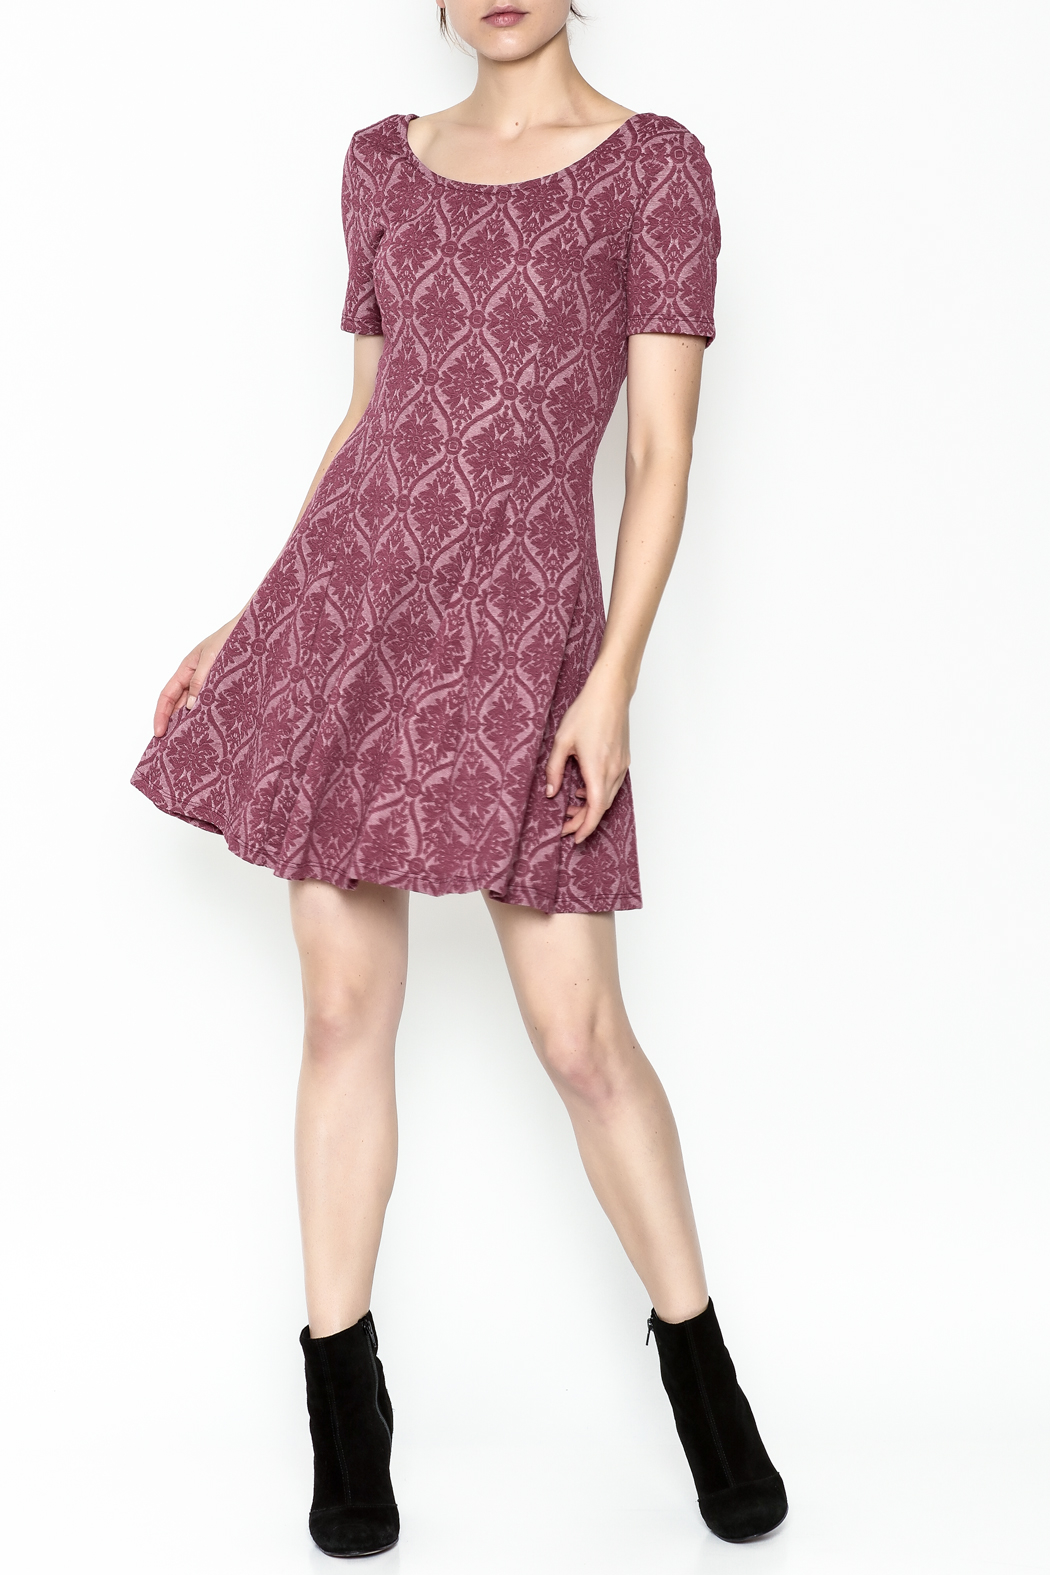 Everly Patterned Deep Pink Dress - Side Cropped Image